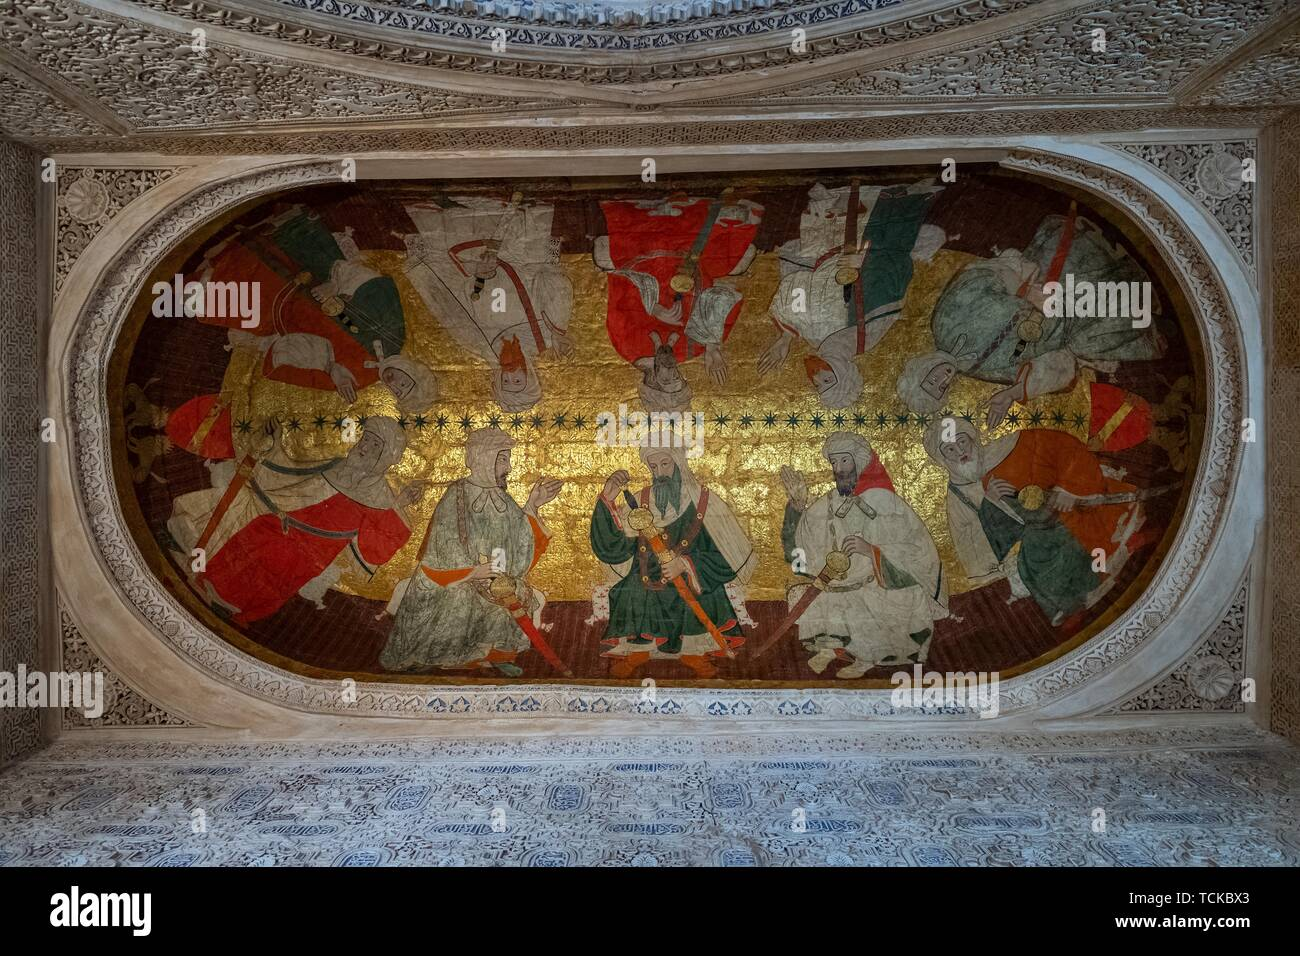 Assembly of ten Islamic dignitaries, ceiling painting, Sala de los Reyes, Room of the Kings, Nasrid palaces, Alhambra, Granada, Andalusia, Spain - Stock Image